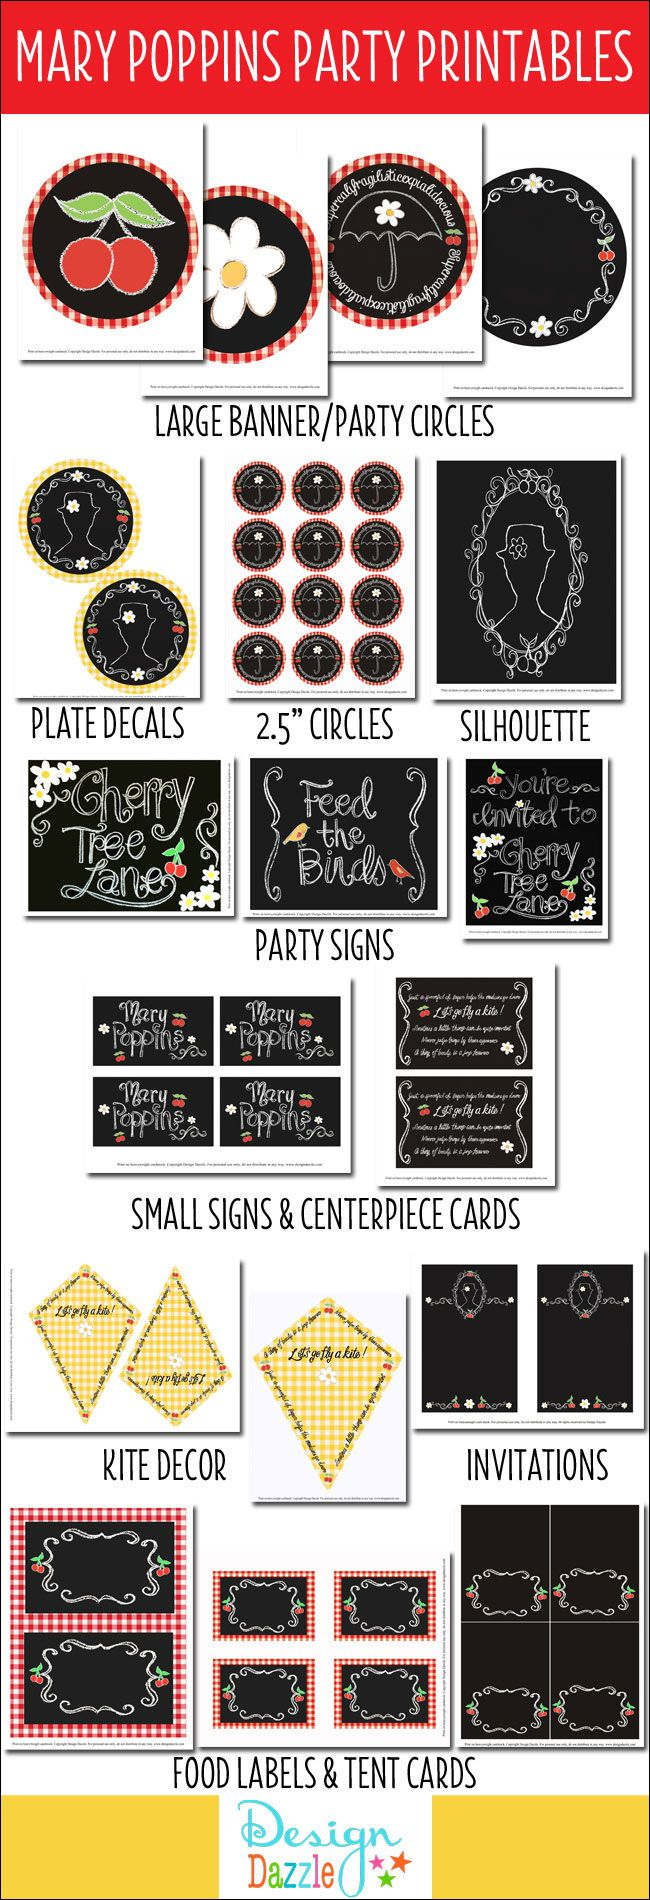 Mary Poppins Party Printables Package